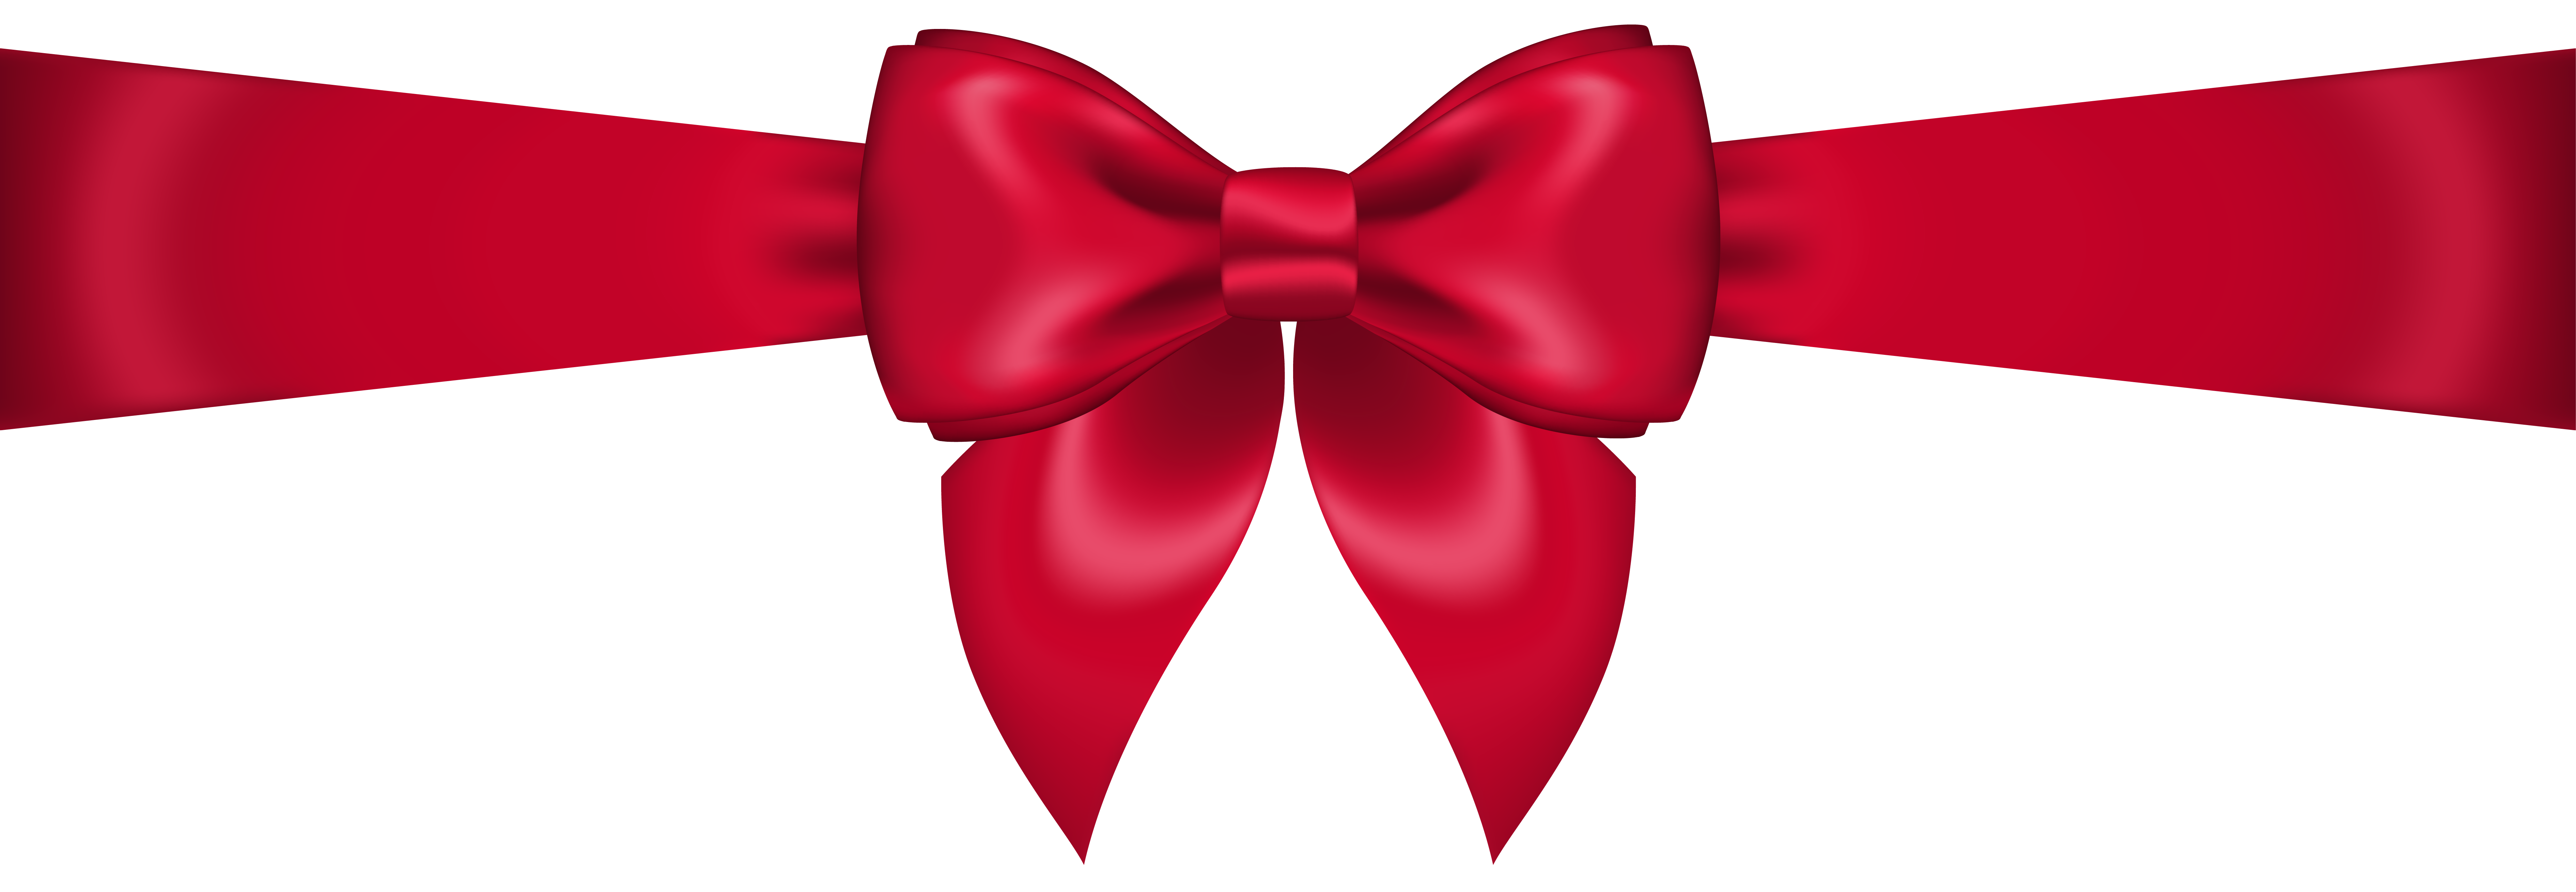 Red Bow Transparent PNG Clip Art Image.